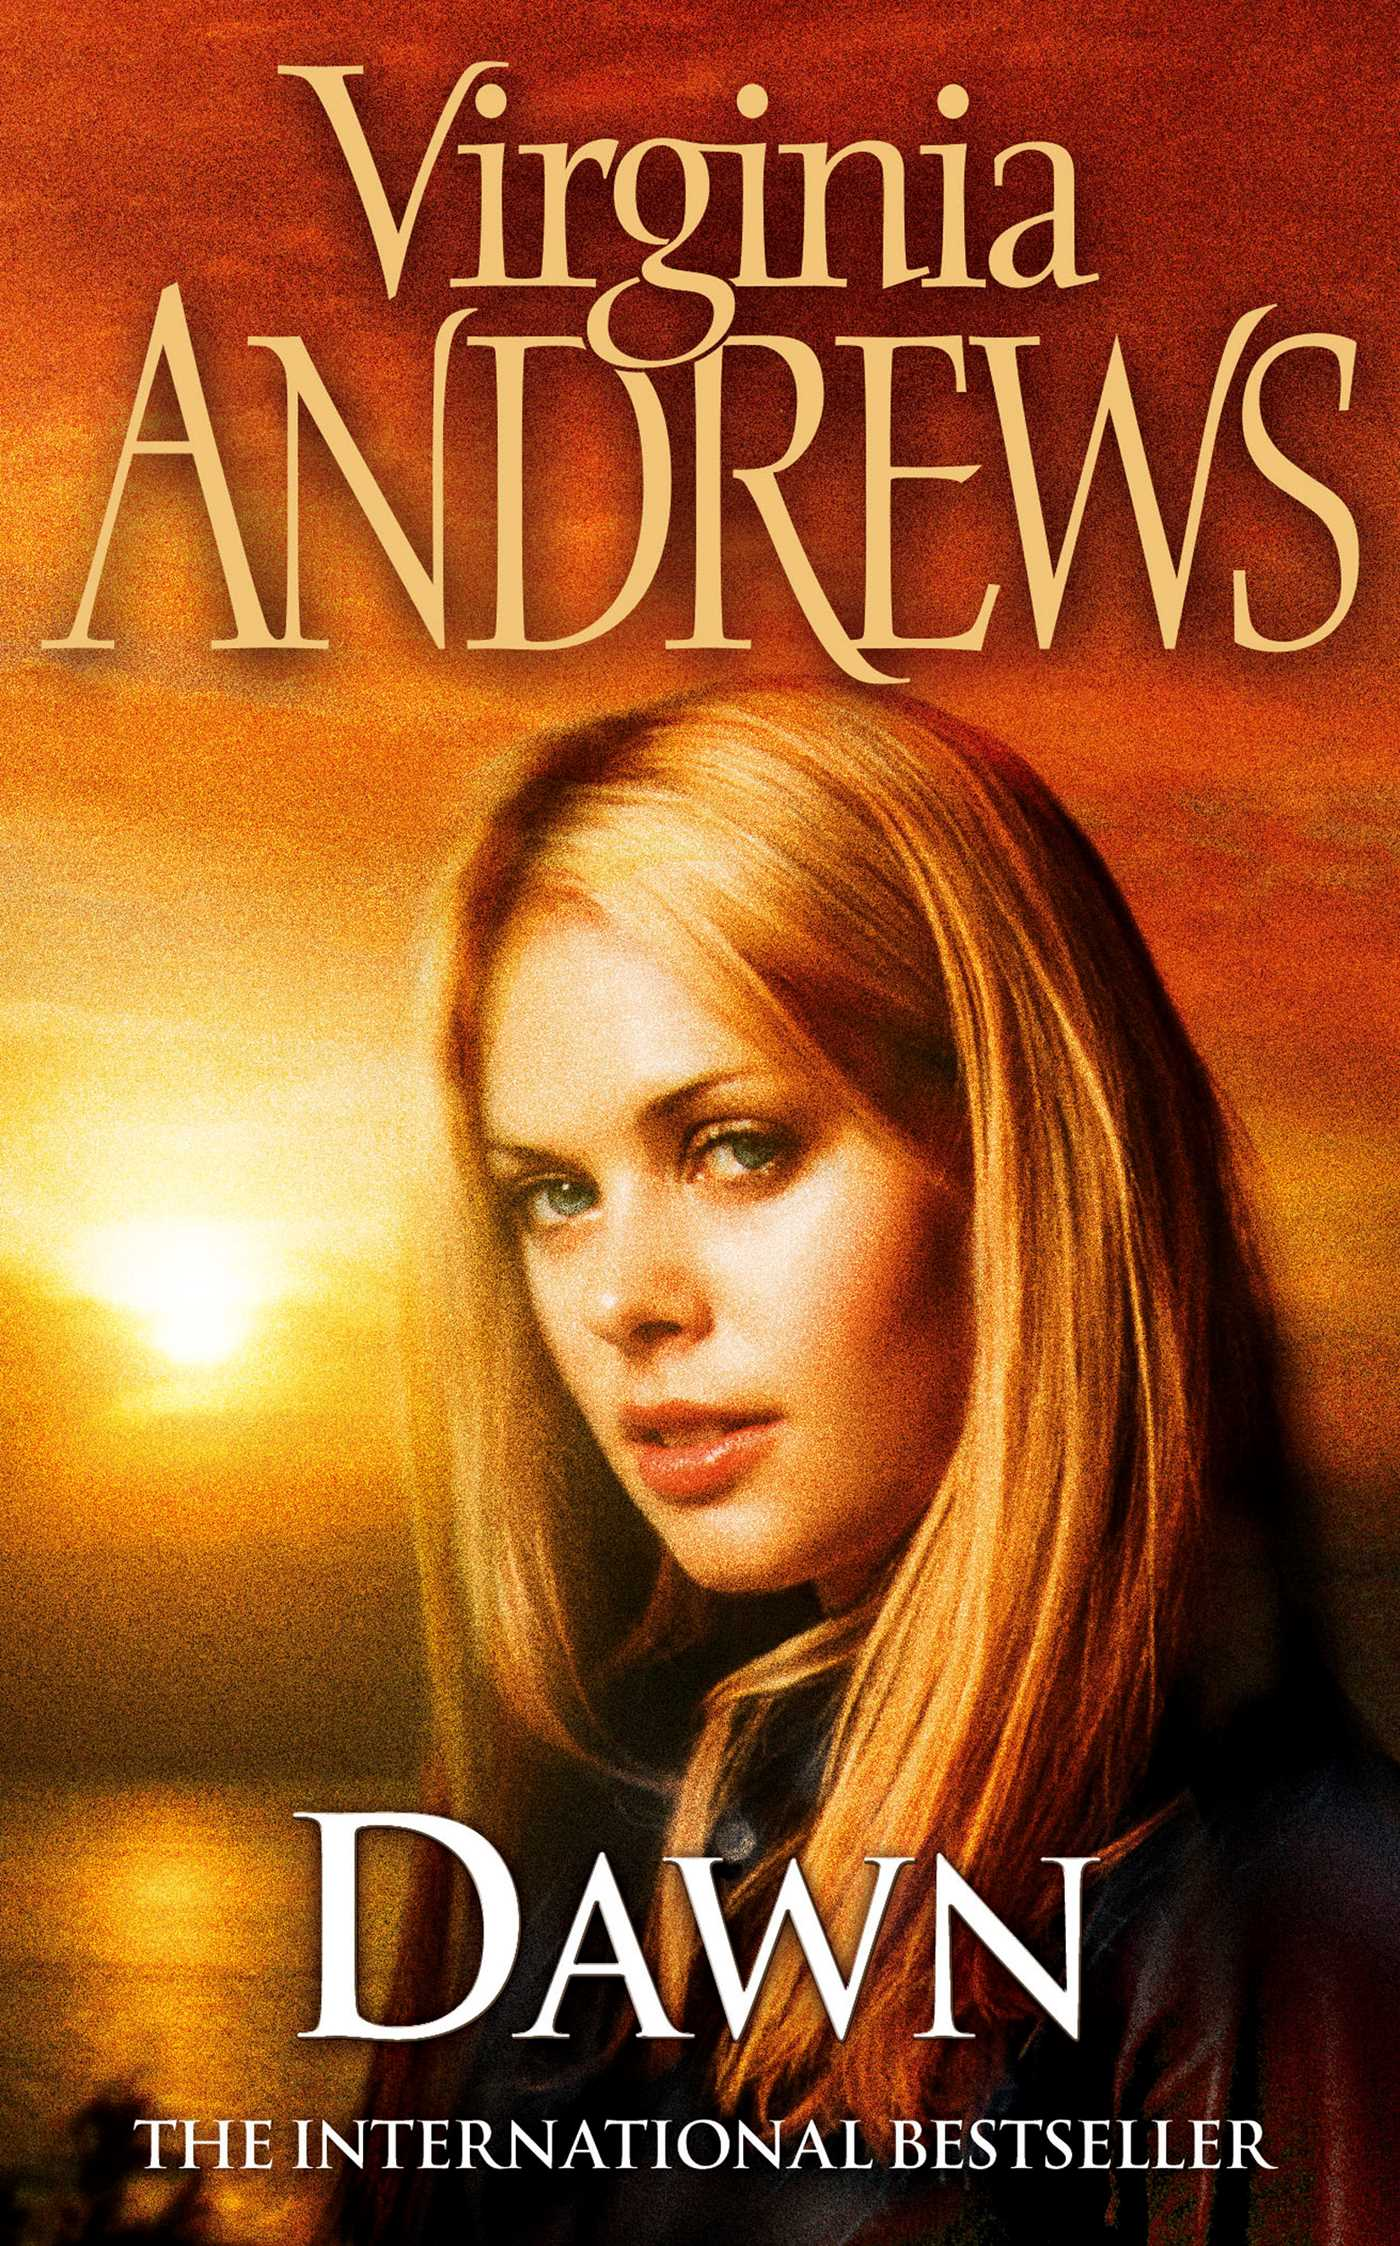 Dawn Ebook By Virginia Andrews Official Publisher Page